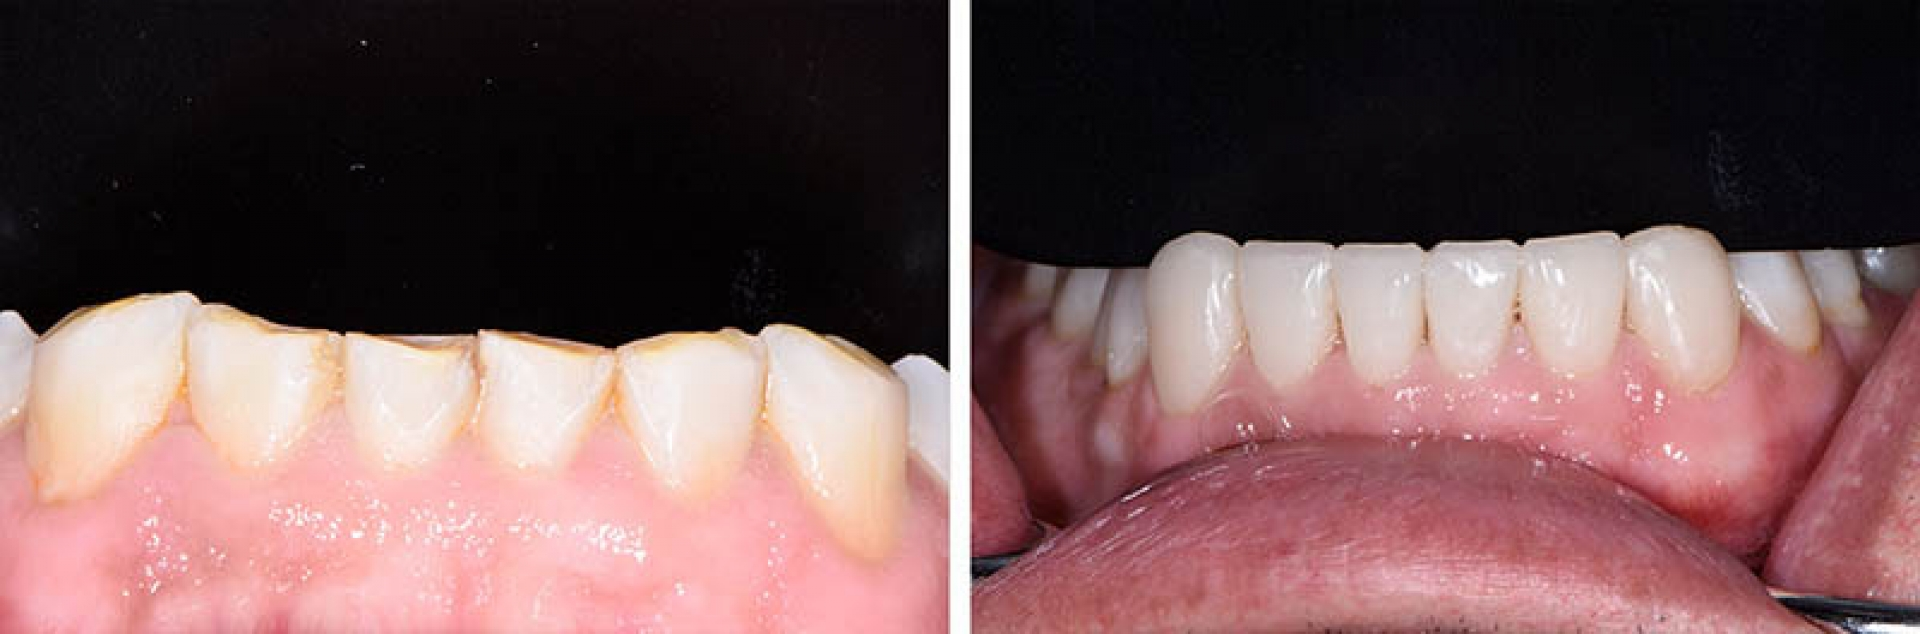 our work-DIRECT RESTORATIONS / ABRASIO